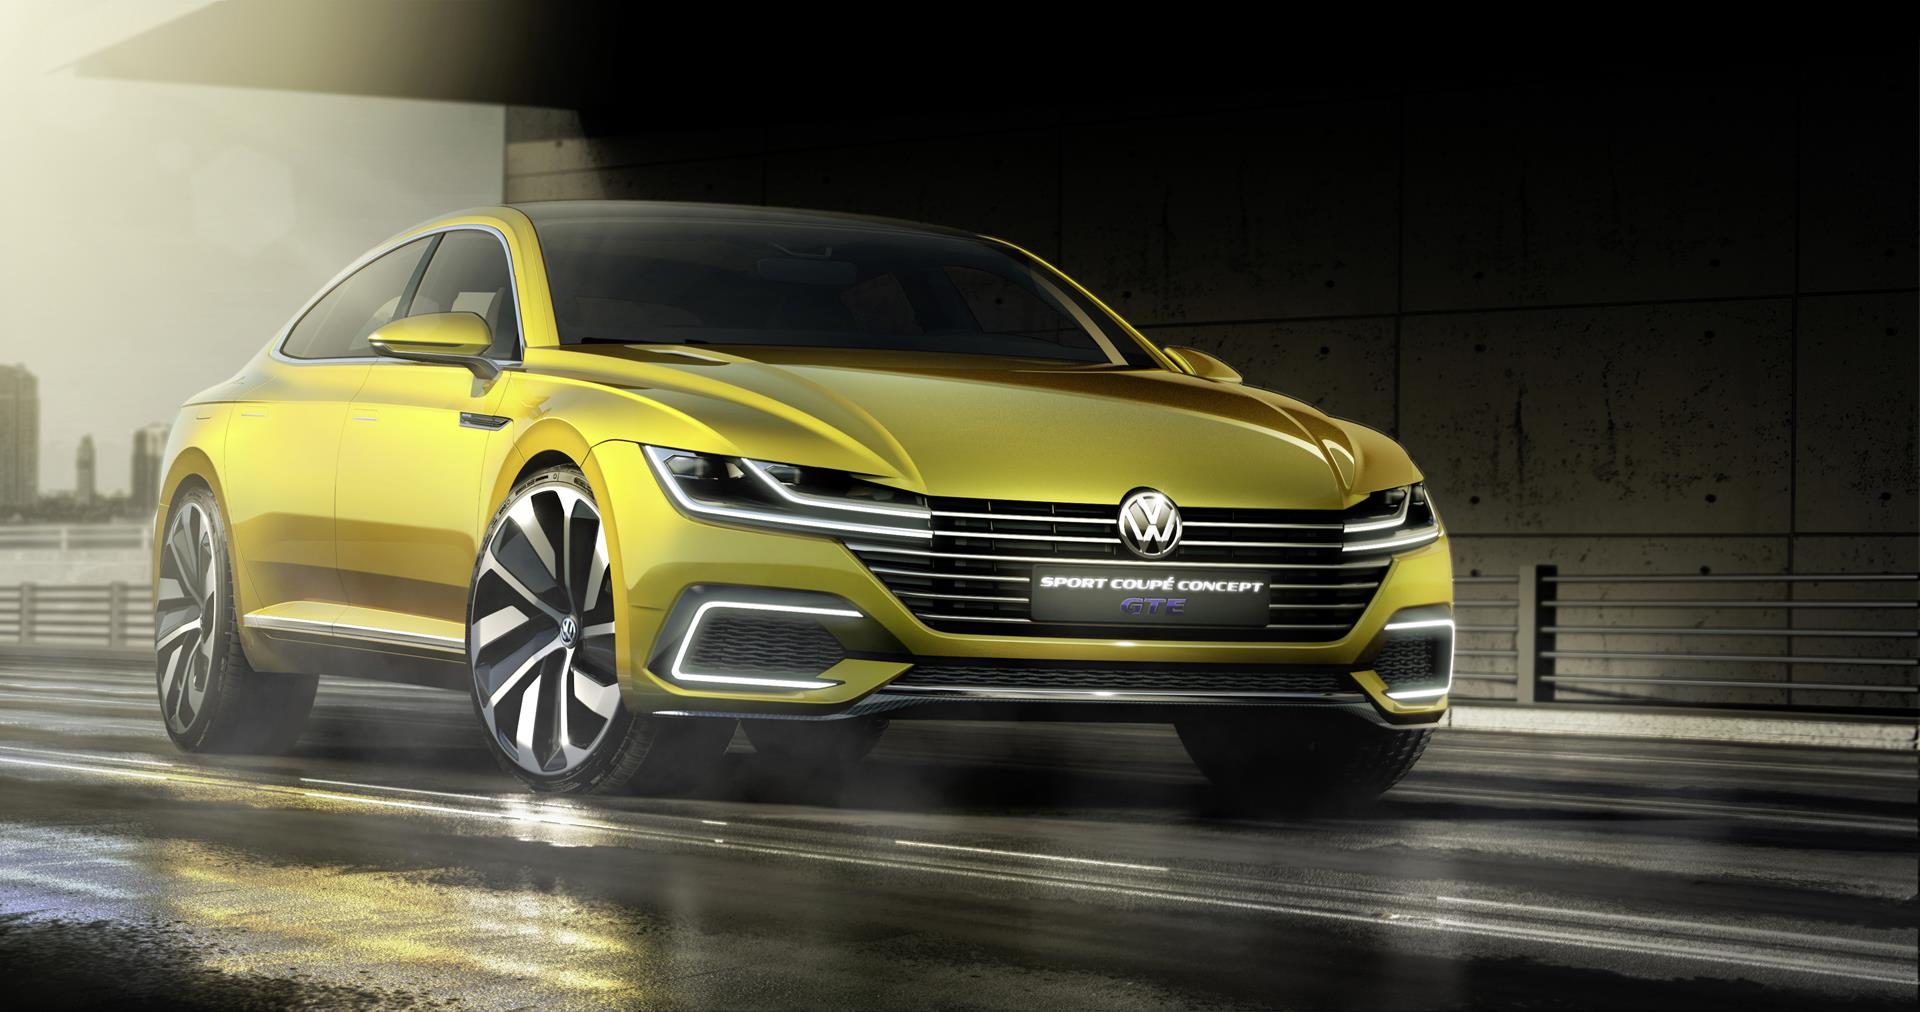 volkswagen sport coupe concept gte news  information research  pricing